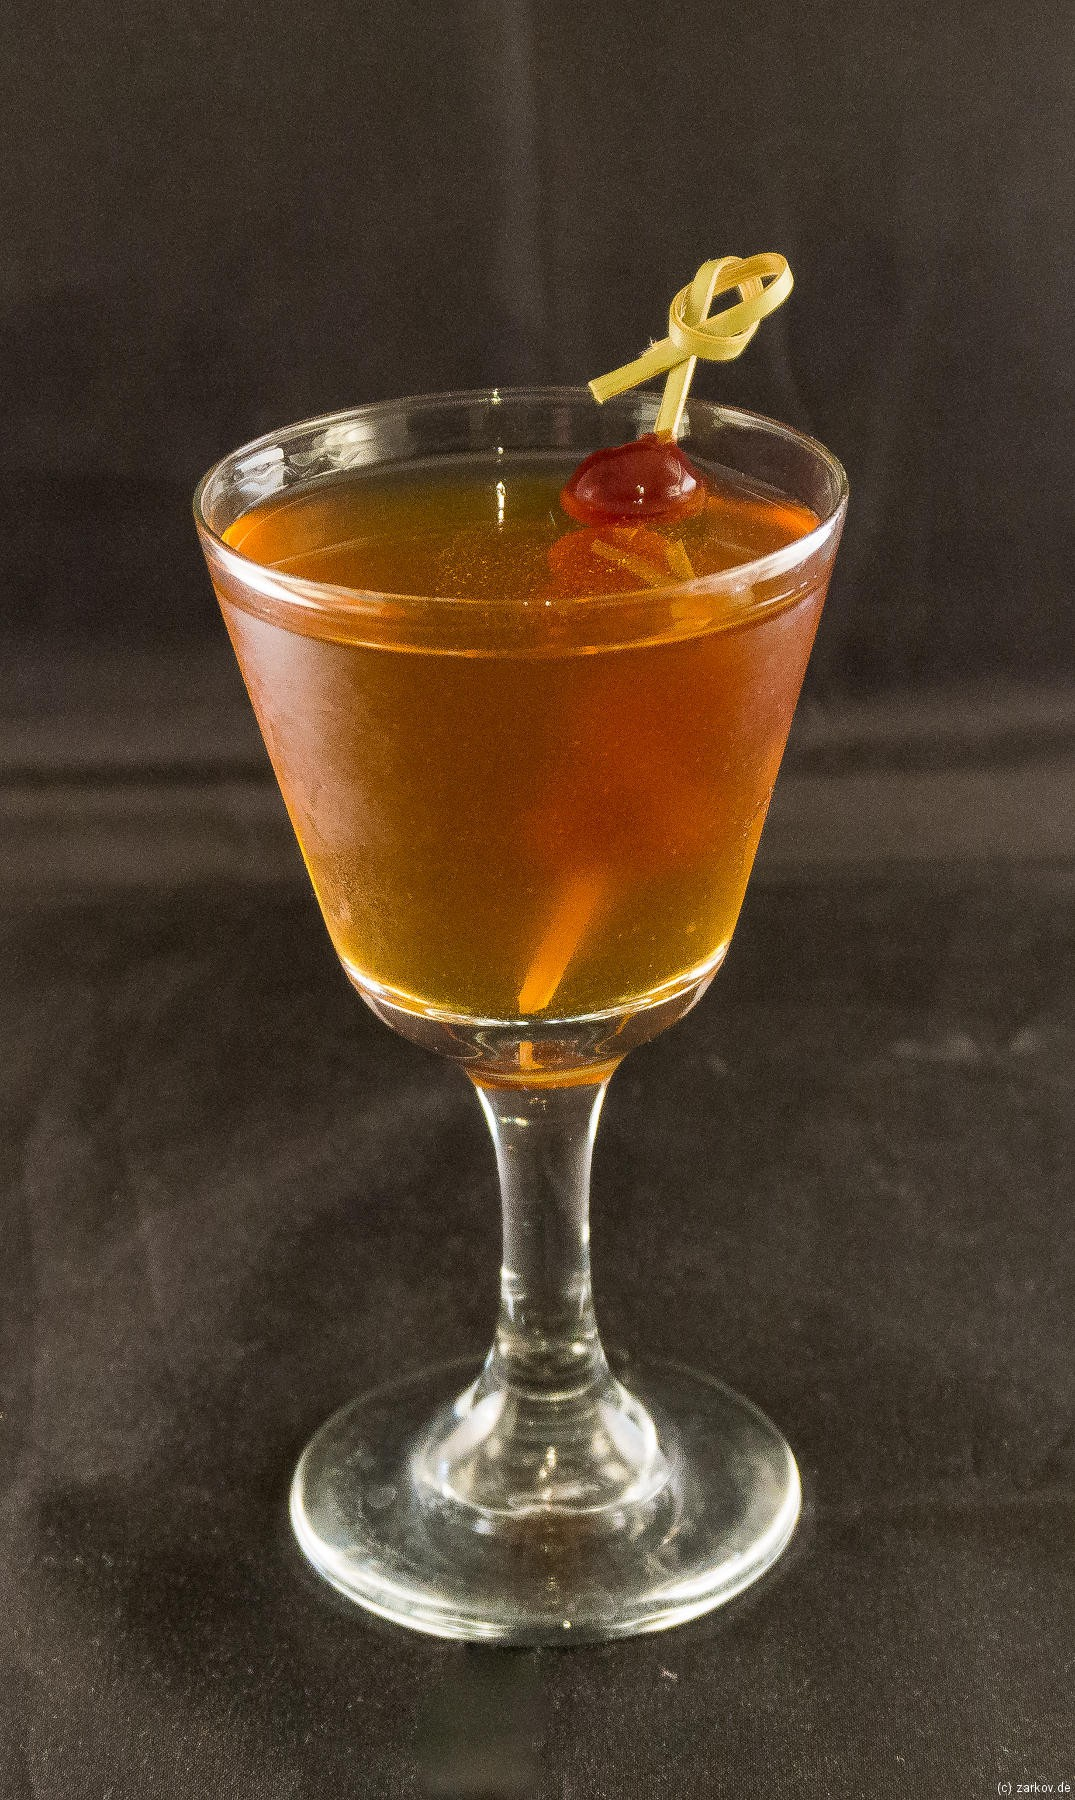 The Red Hook Cocktail